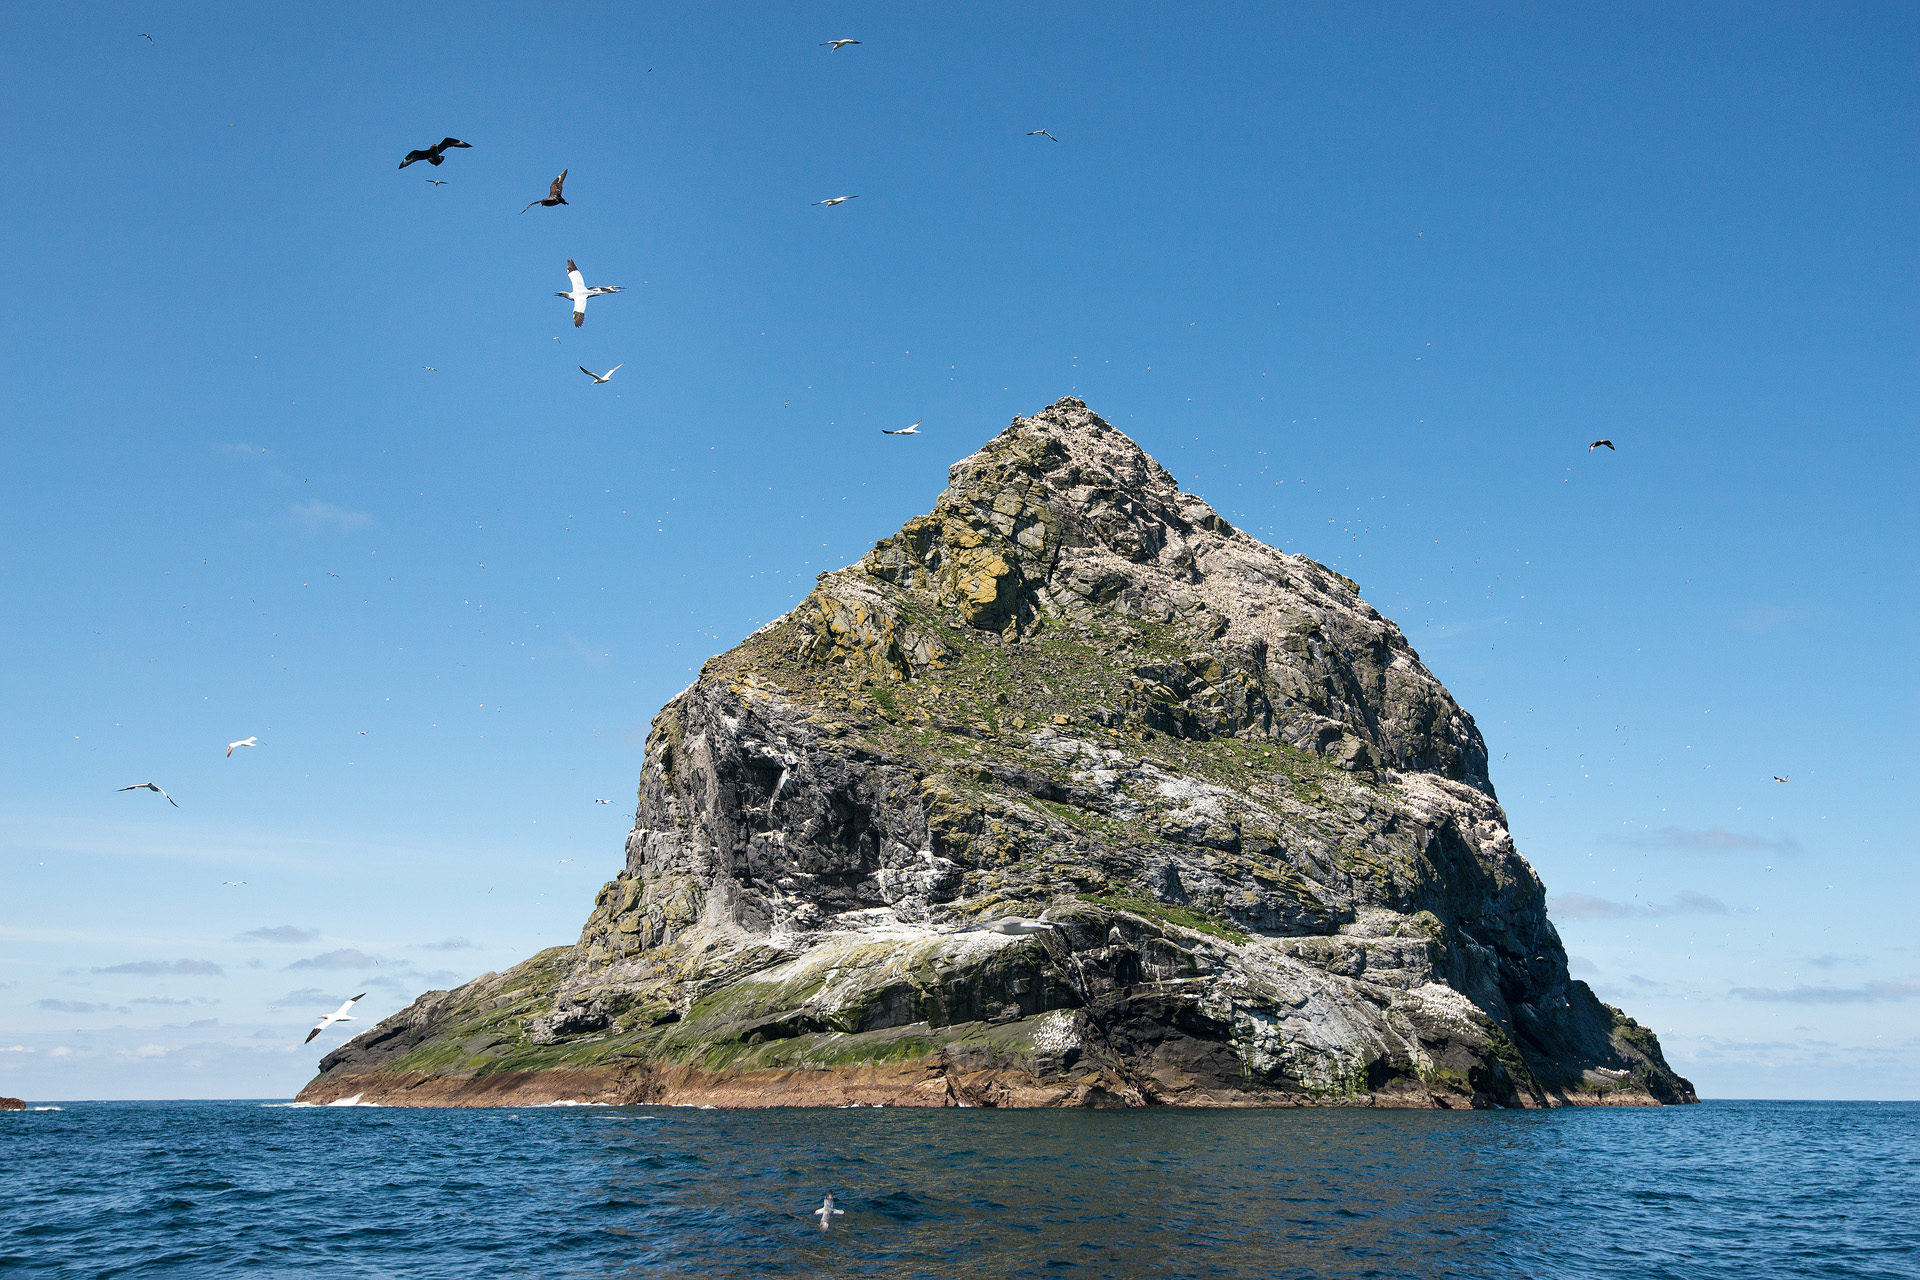 Skuas attacking Gannet, Stac an Armin, St. Kilda